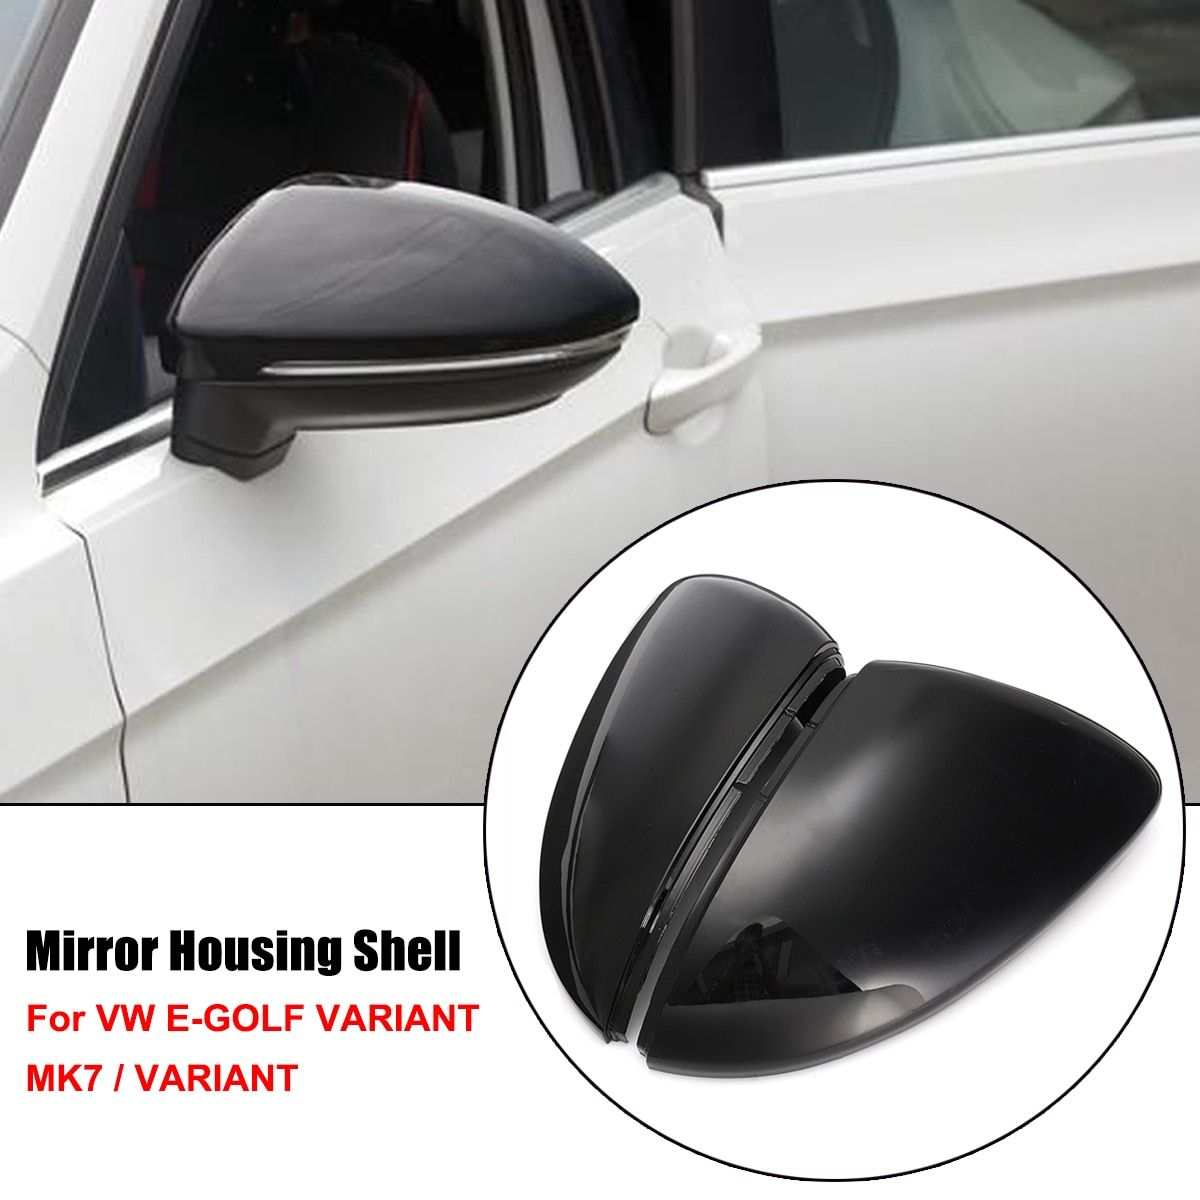 Pair Rearview Mirror Cover Side Wing Rear View Mirror Case Covers For VW Golf MK7 Golf Variant E-Golf L+R